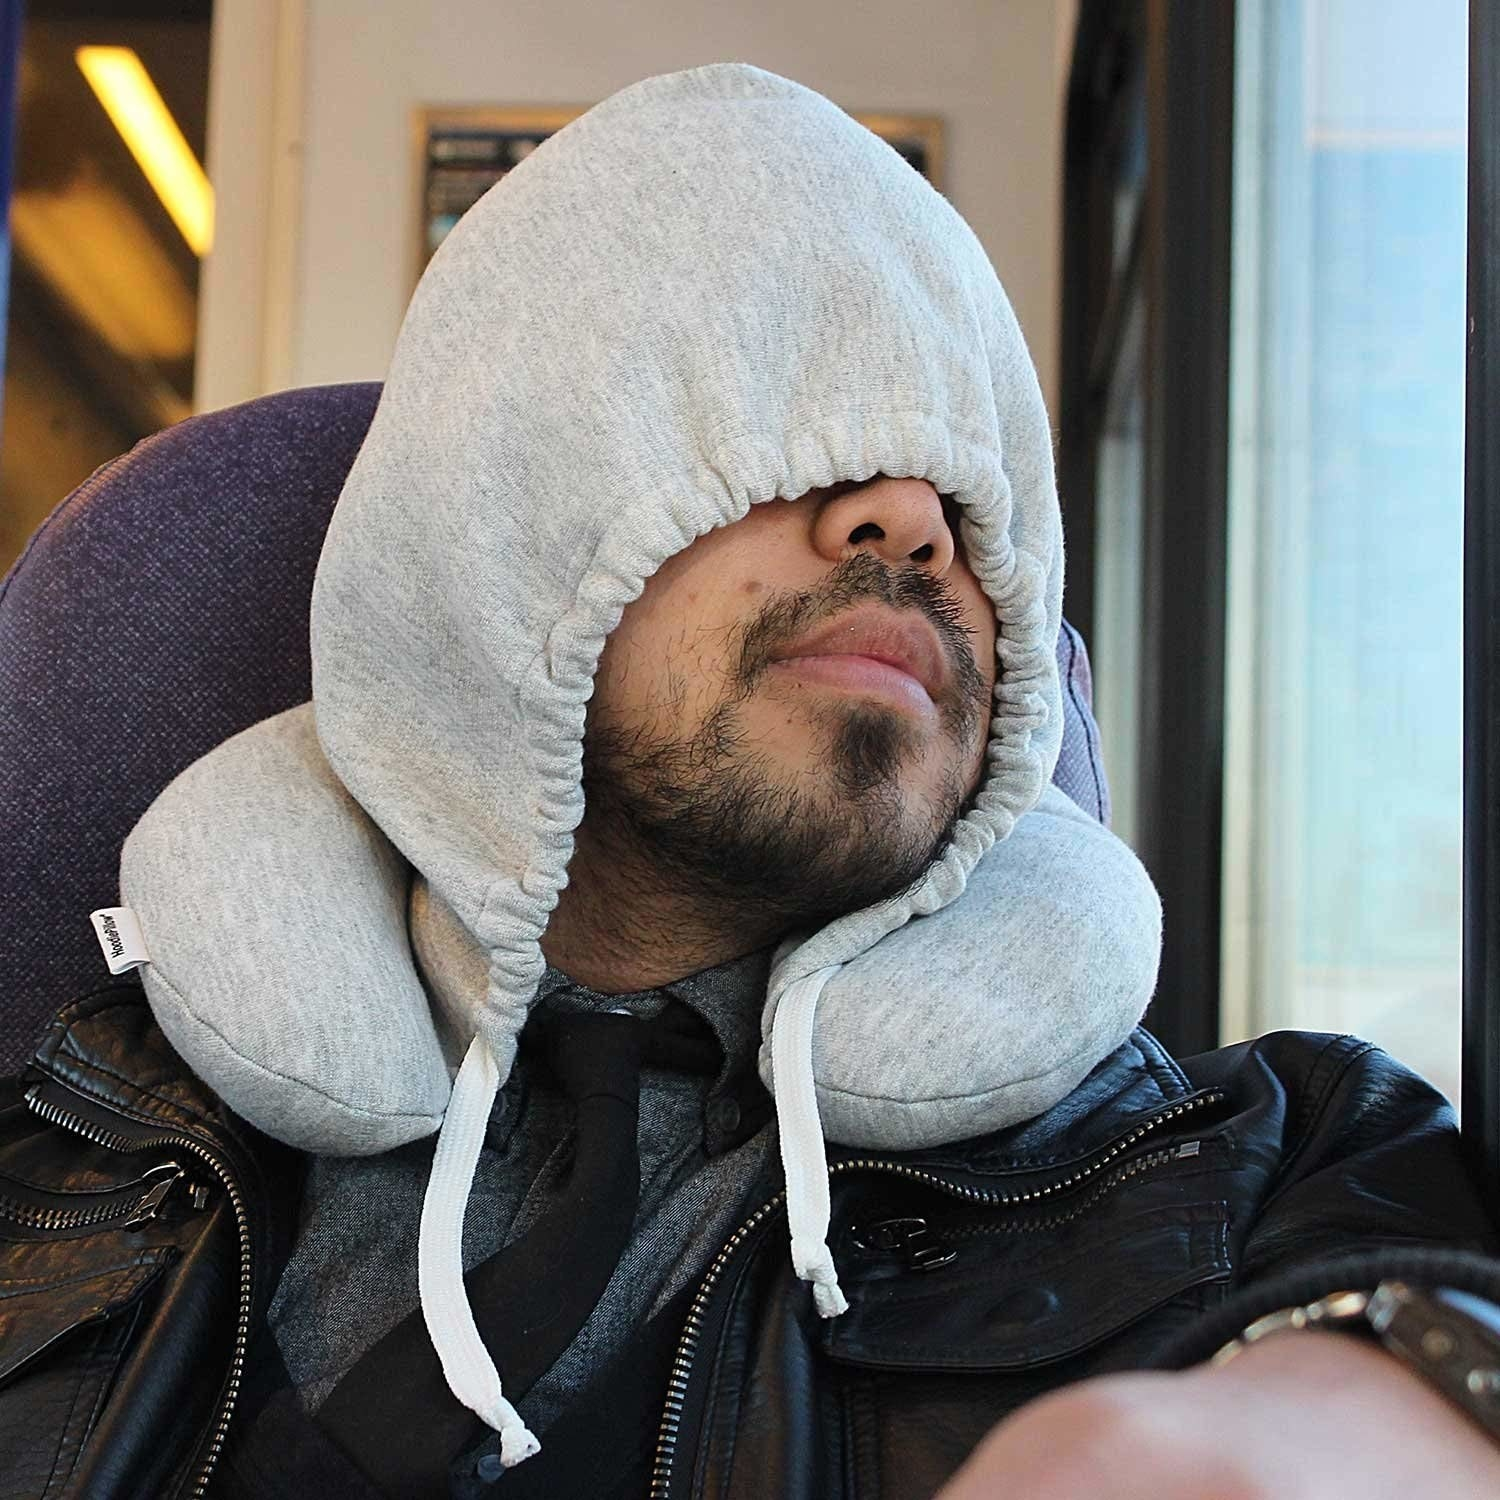 a model sits on a train with a heather grey HoodiePillow Inflatable Neck Pillow on